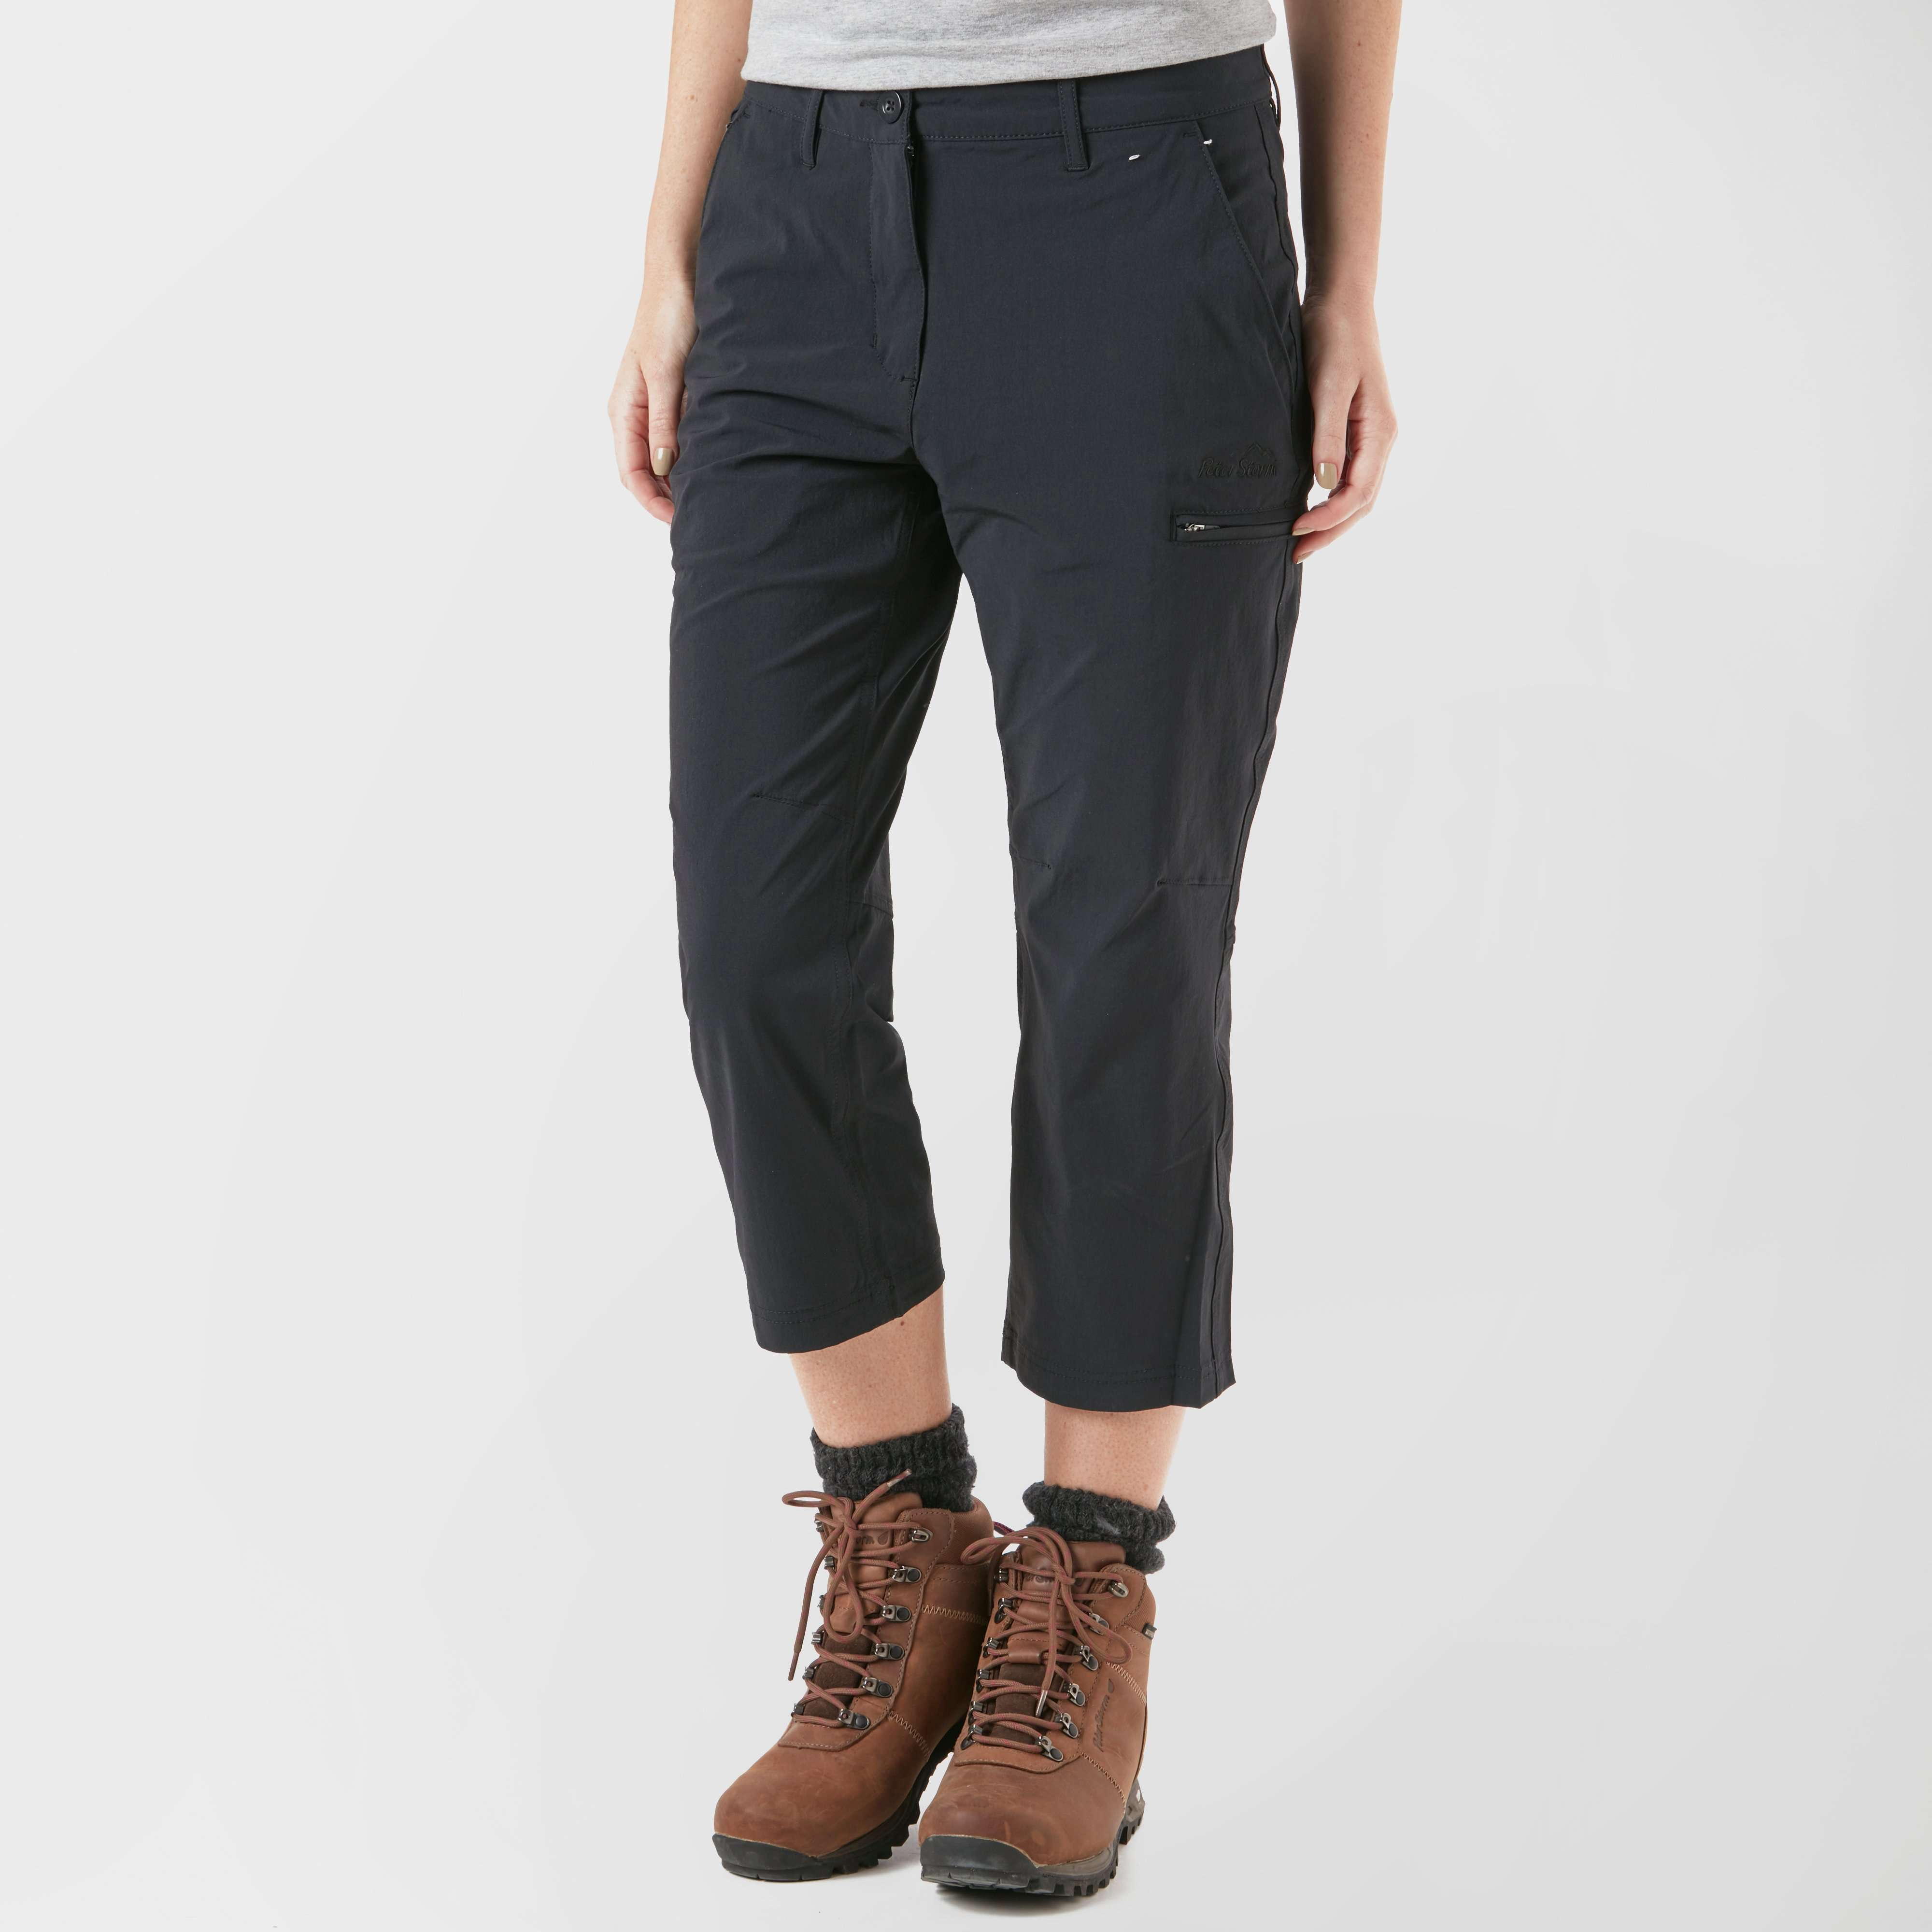 PETER STORM Women's Stretch Crop Trousers